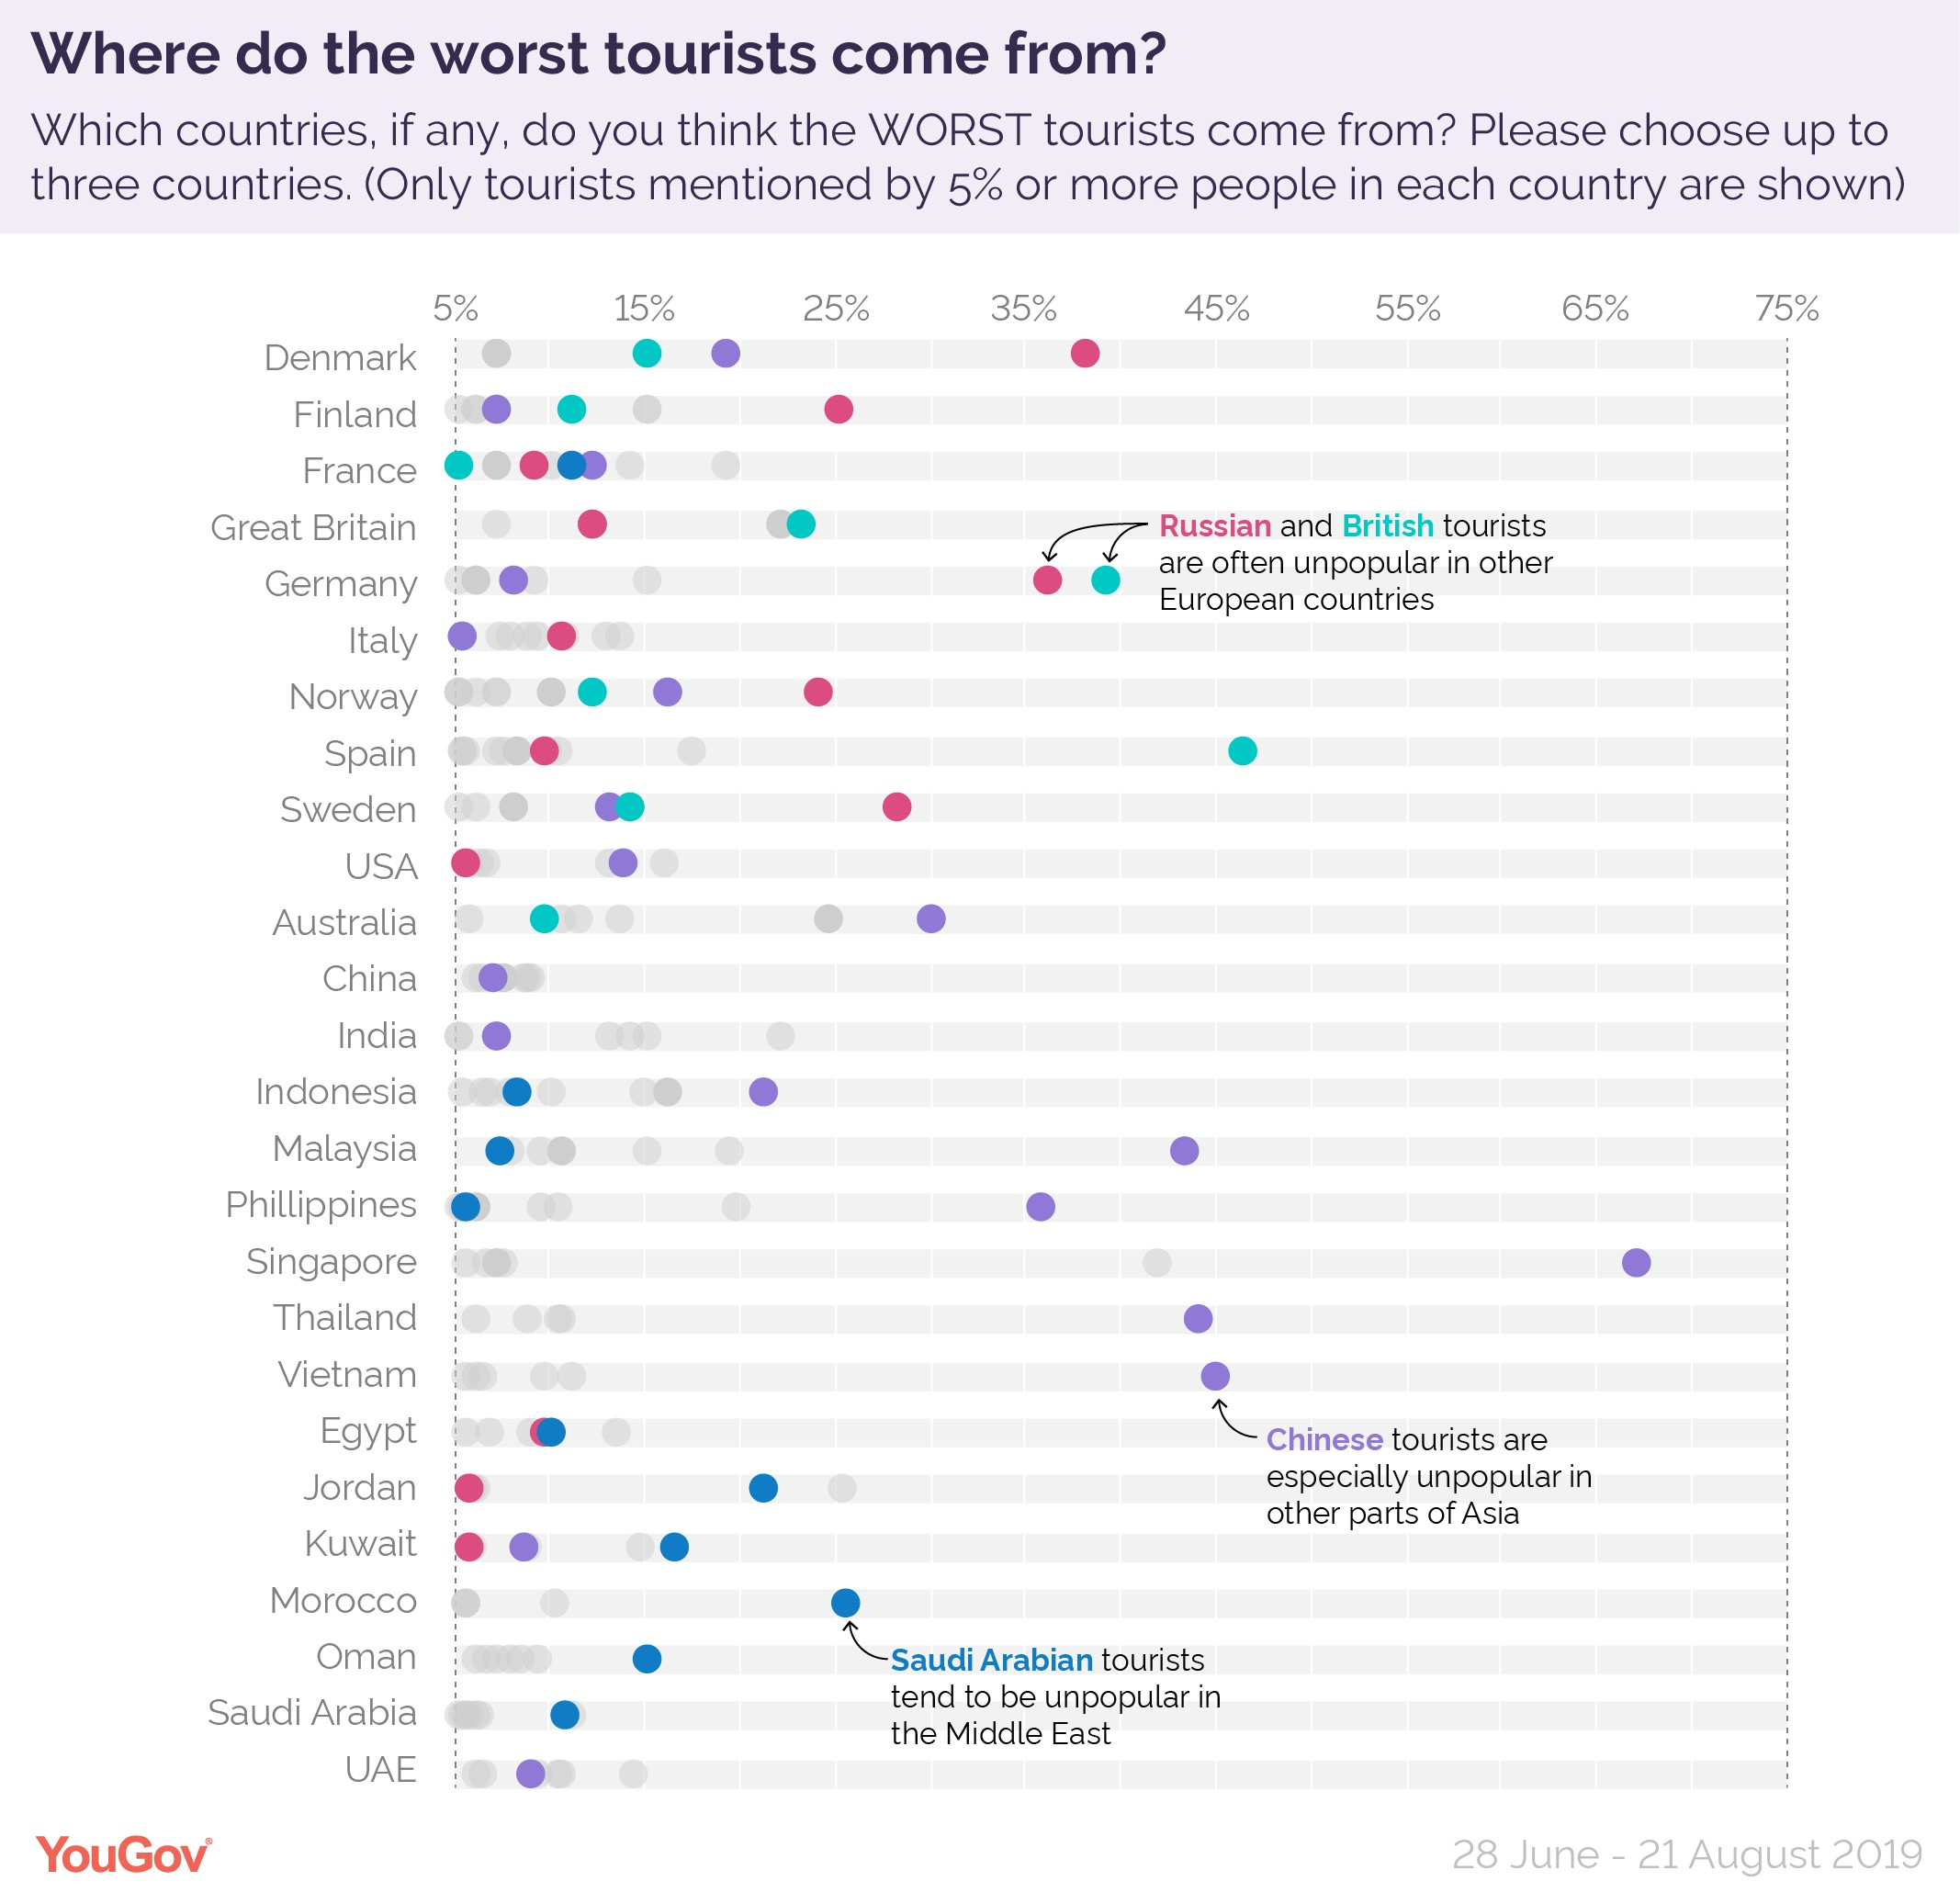 YouGov graph showing world's worst tourists